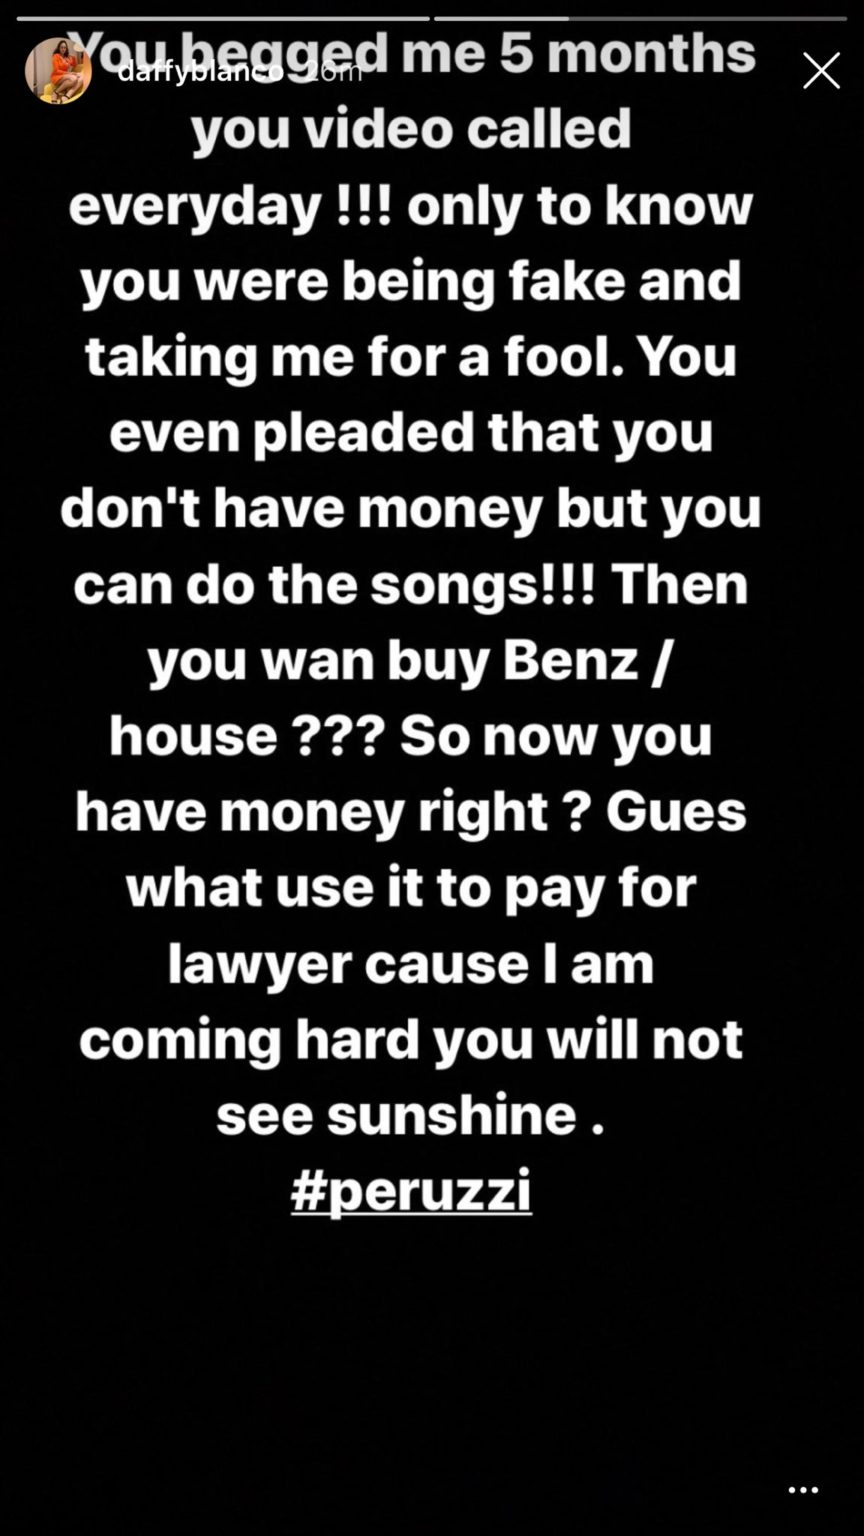 Daffy Blanco Accuses Peruzzi Of Raping And Defrauding Her Of N15m, Releases Audio To Back Claims 6